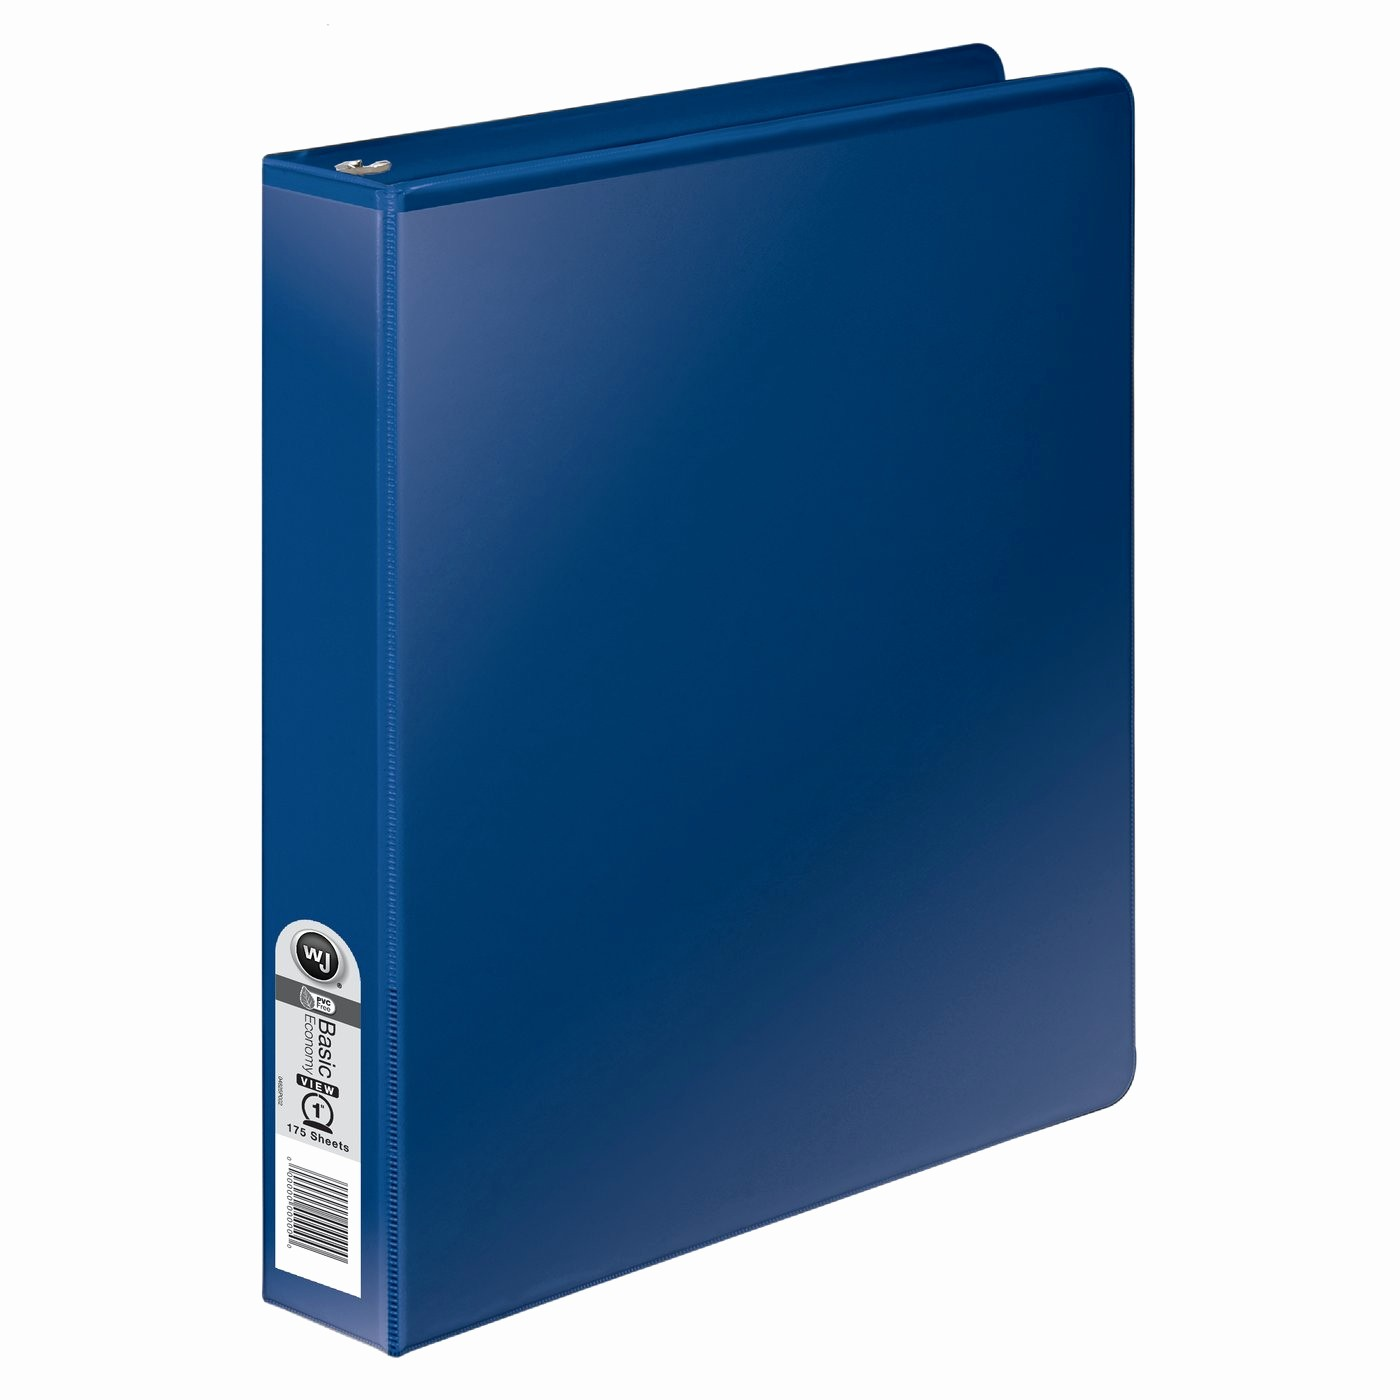 How to Create A Binder Elegant Wilson Jones Binders Basic Binders Wilson Jones 362